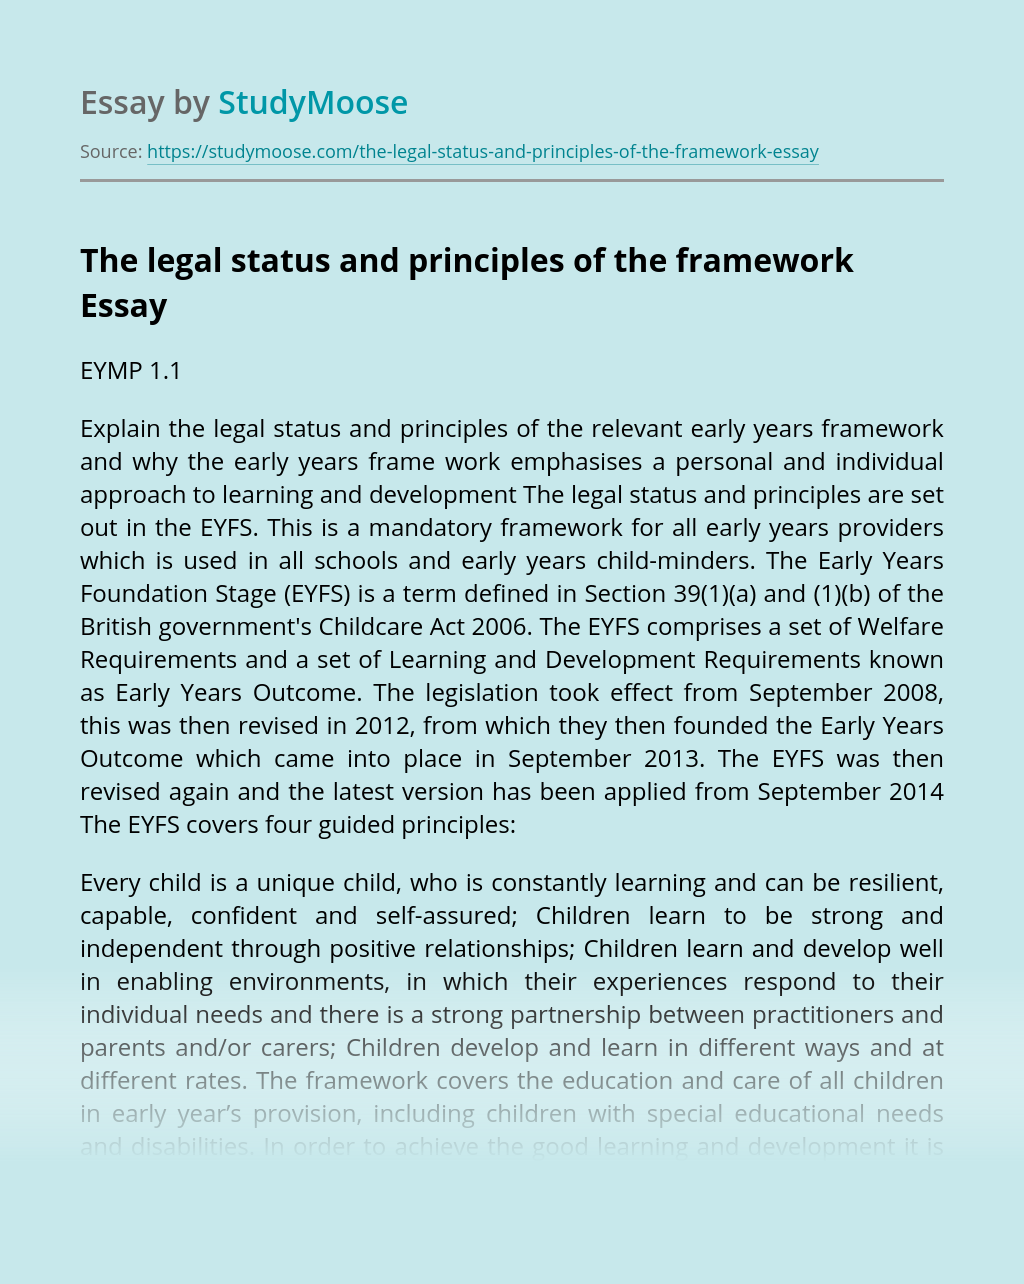 The legal status and principles of the framework